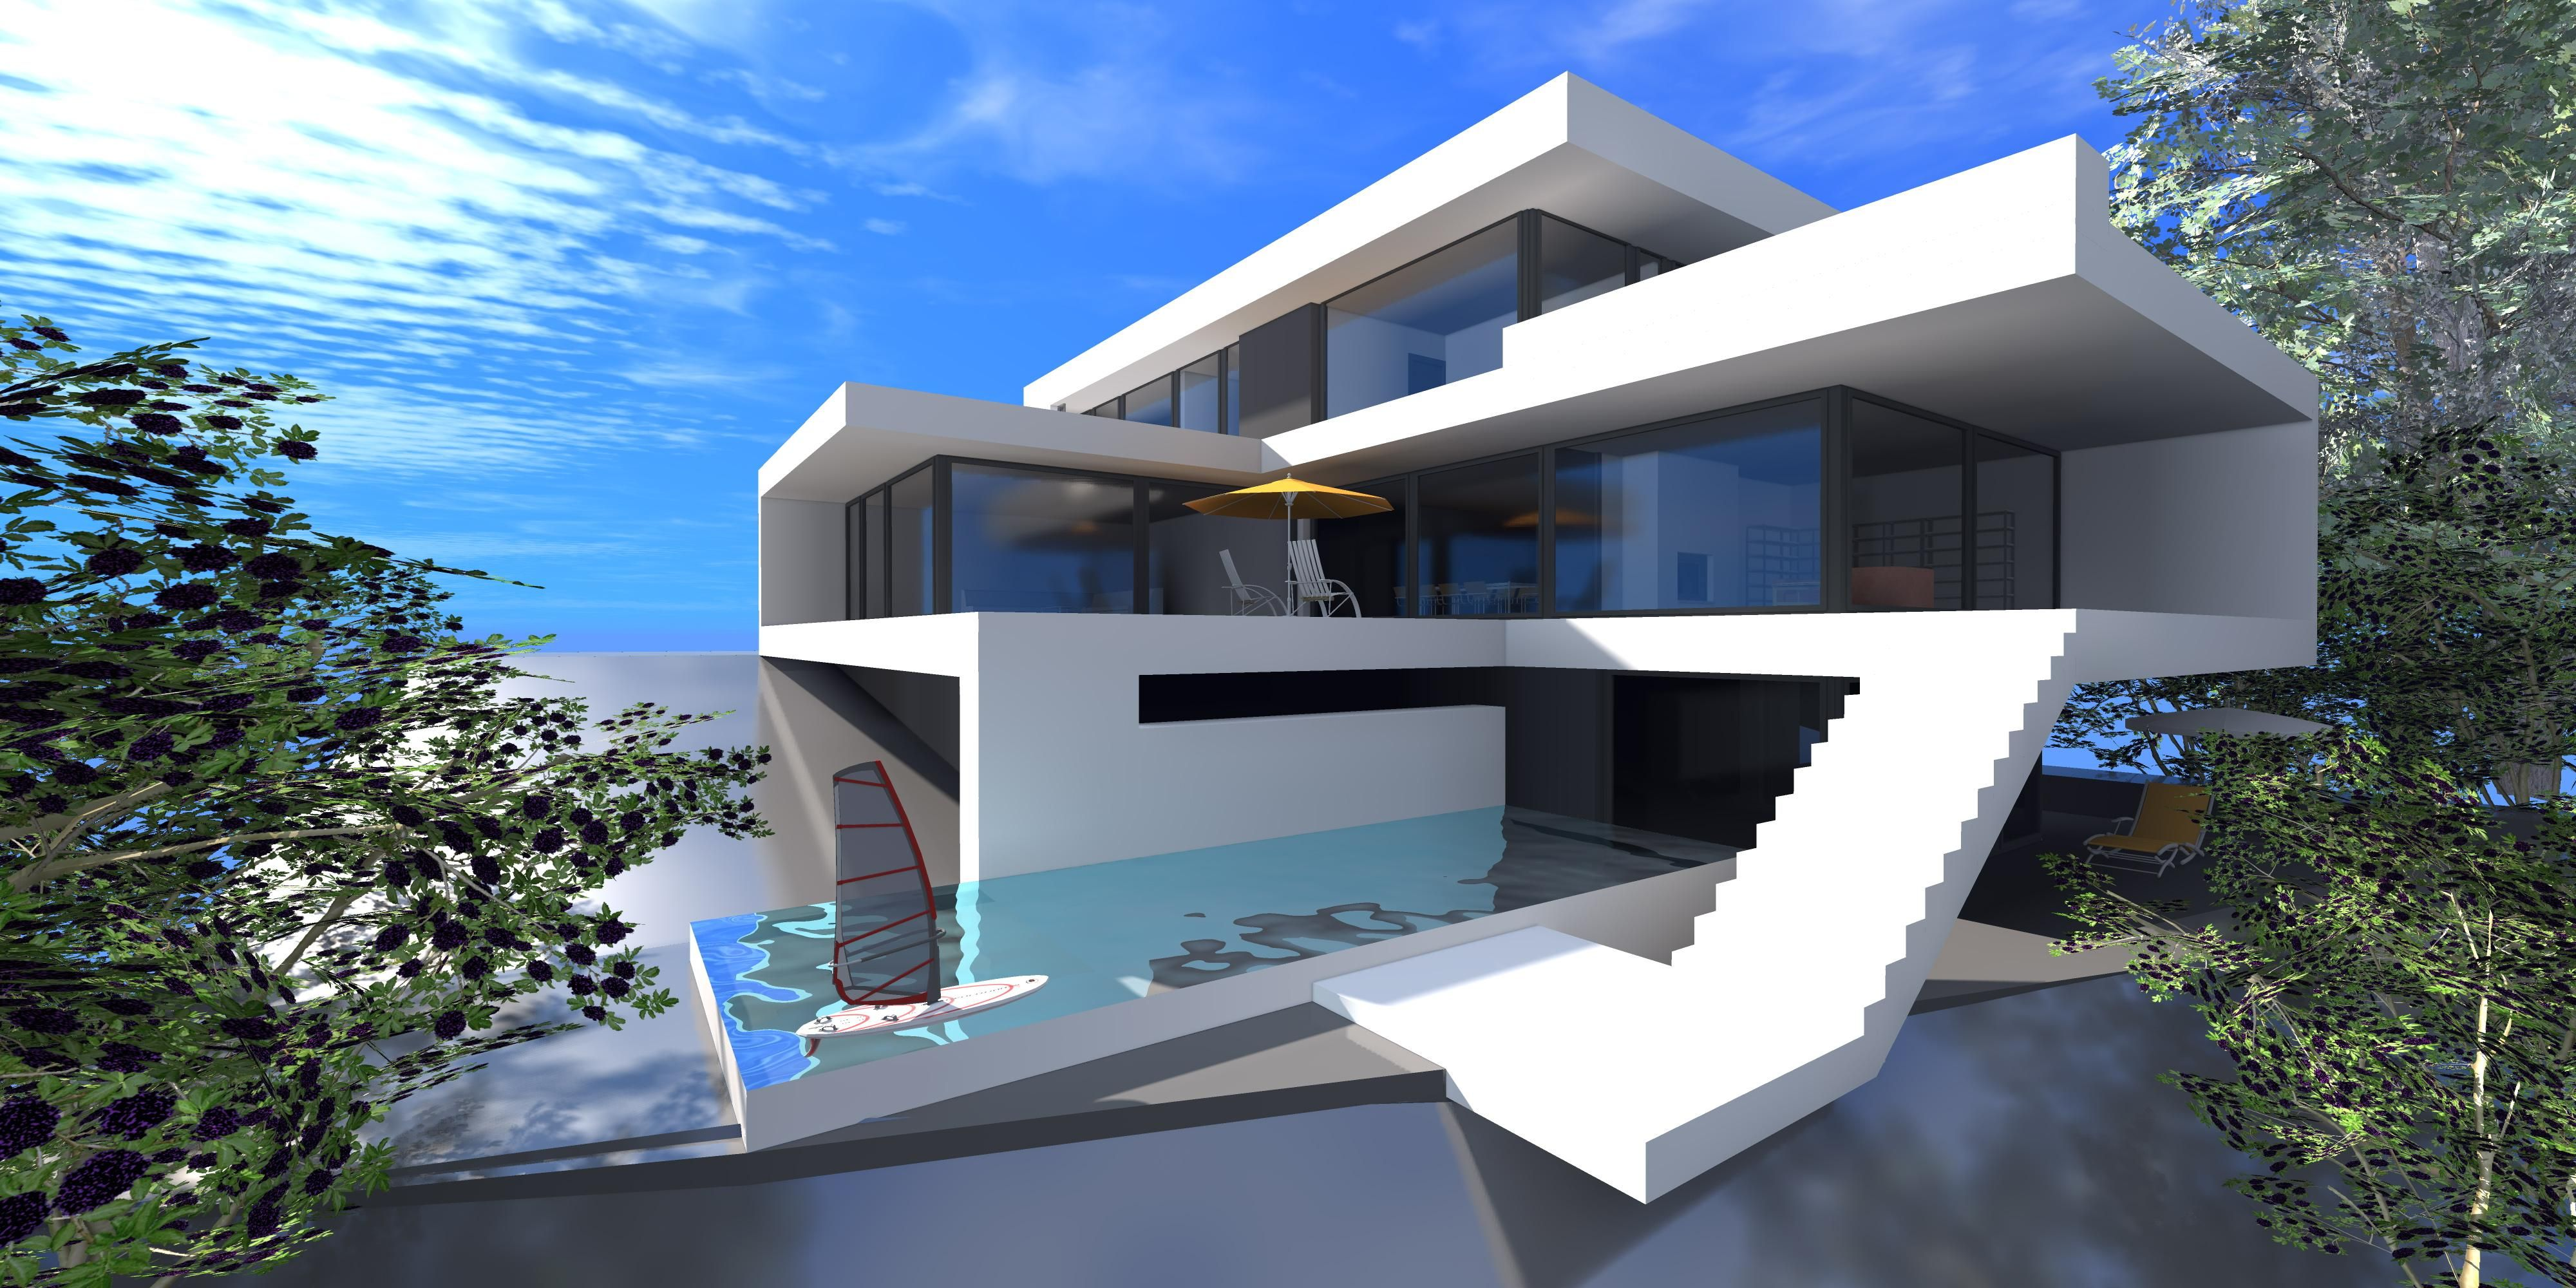 Top modern house in the world most expensive and unique design architecture design Modern villa architecture design